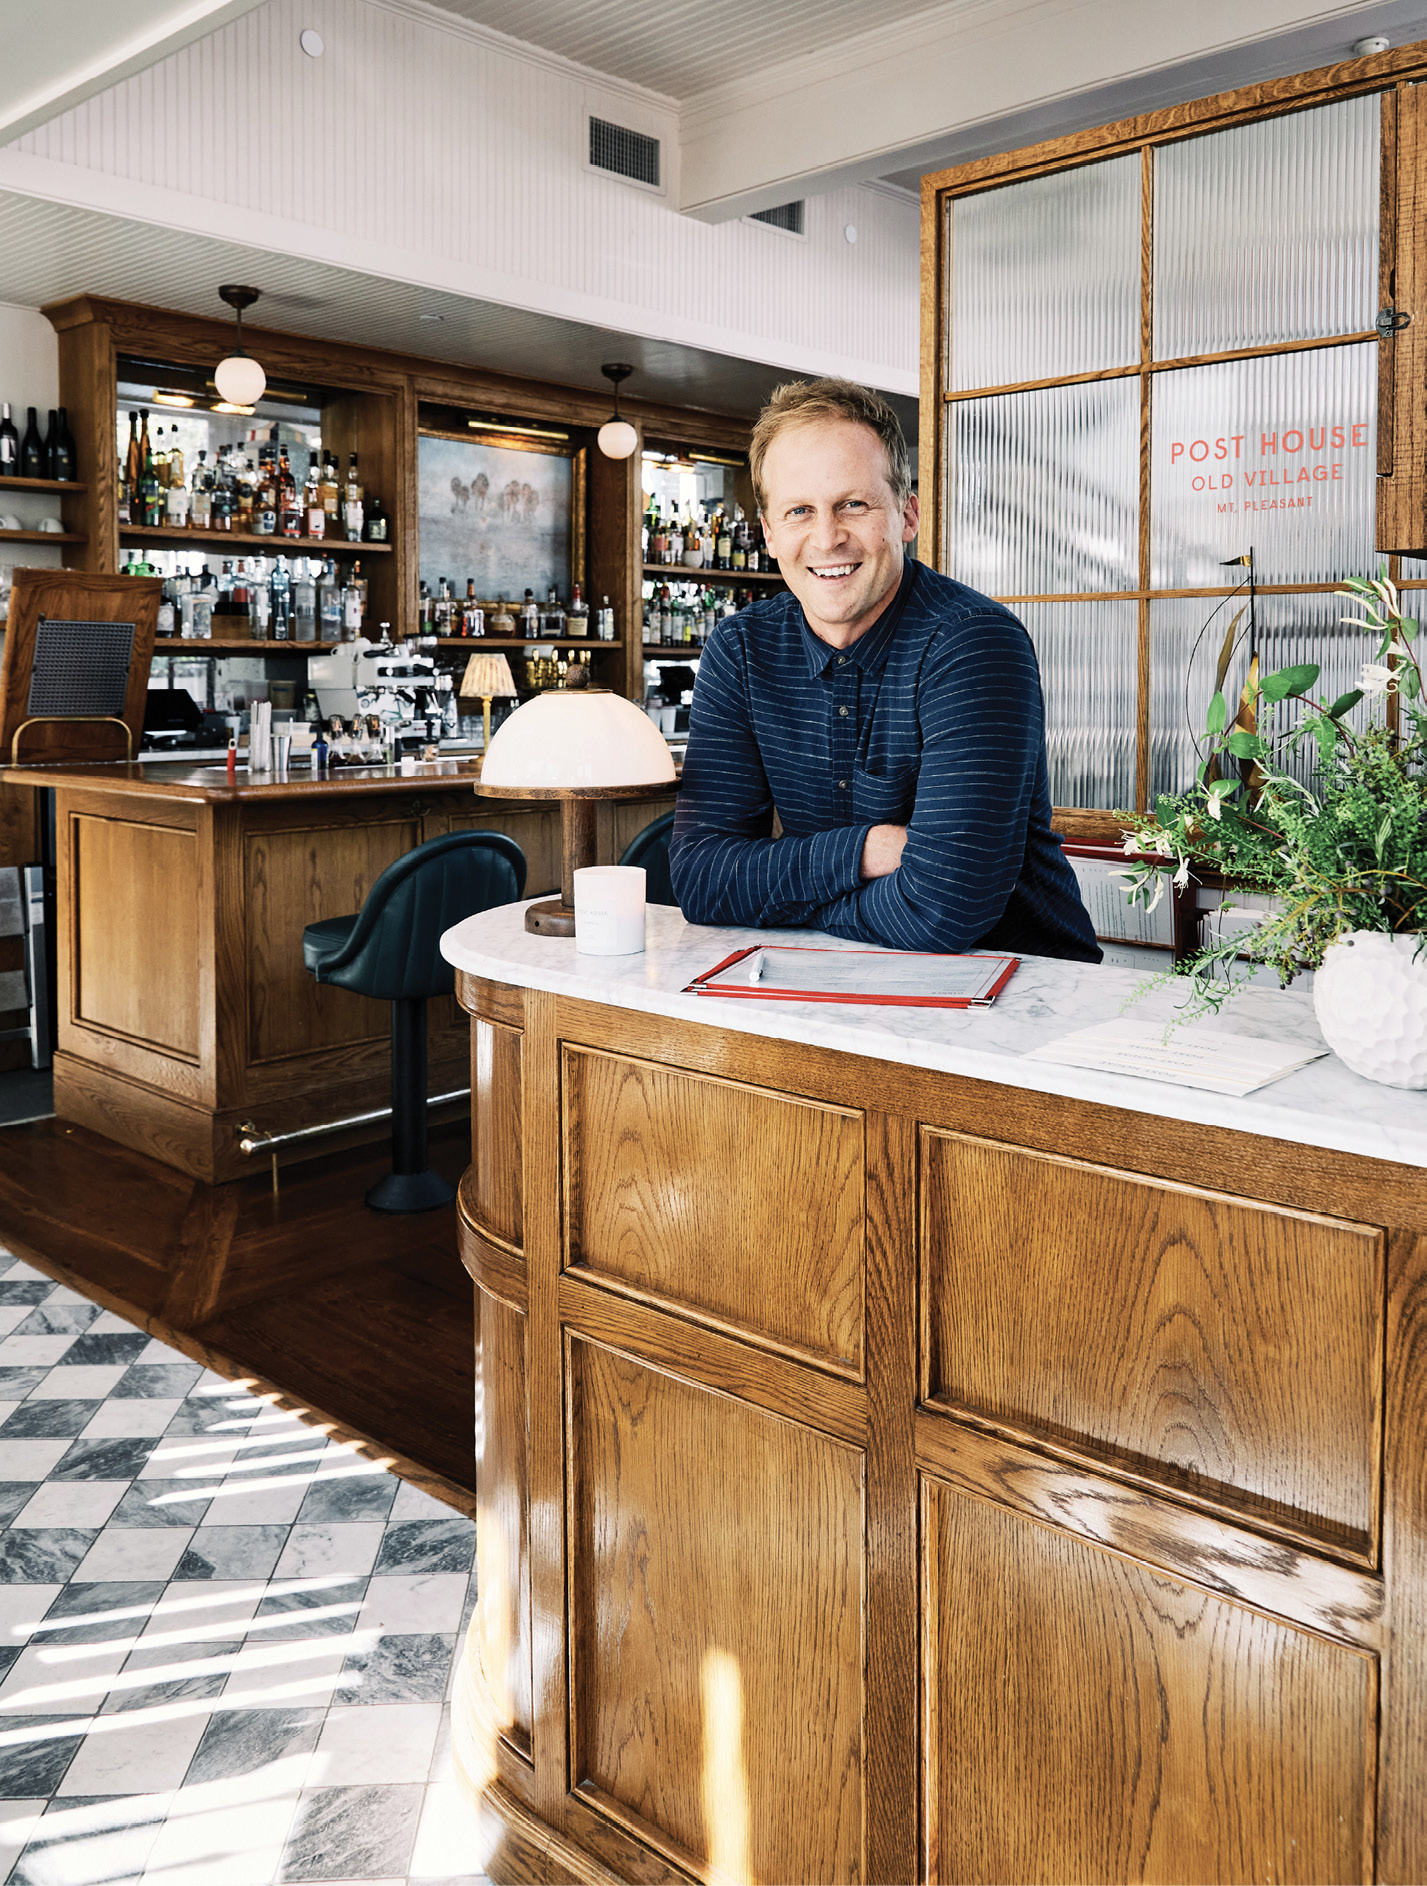 """The Post House lives on as """"a restaurant with rooms above—a very English vision,"""" says Ben. As such, both dining and overnight guests check in at a tidy reception desk just inside the front door."""